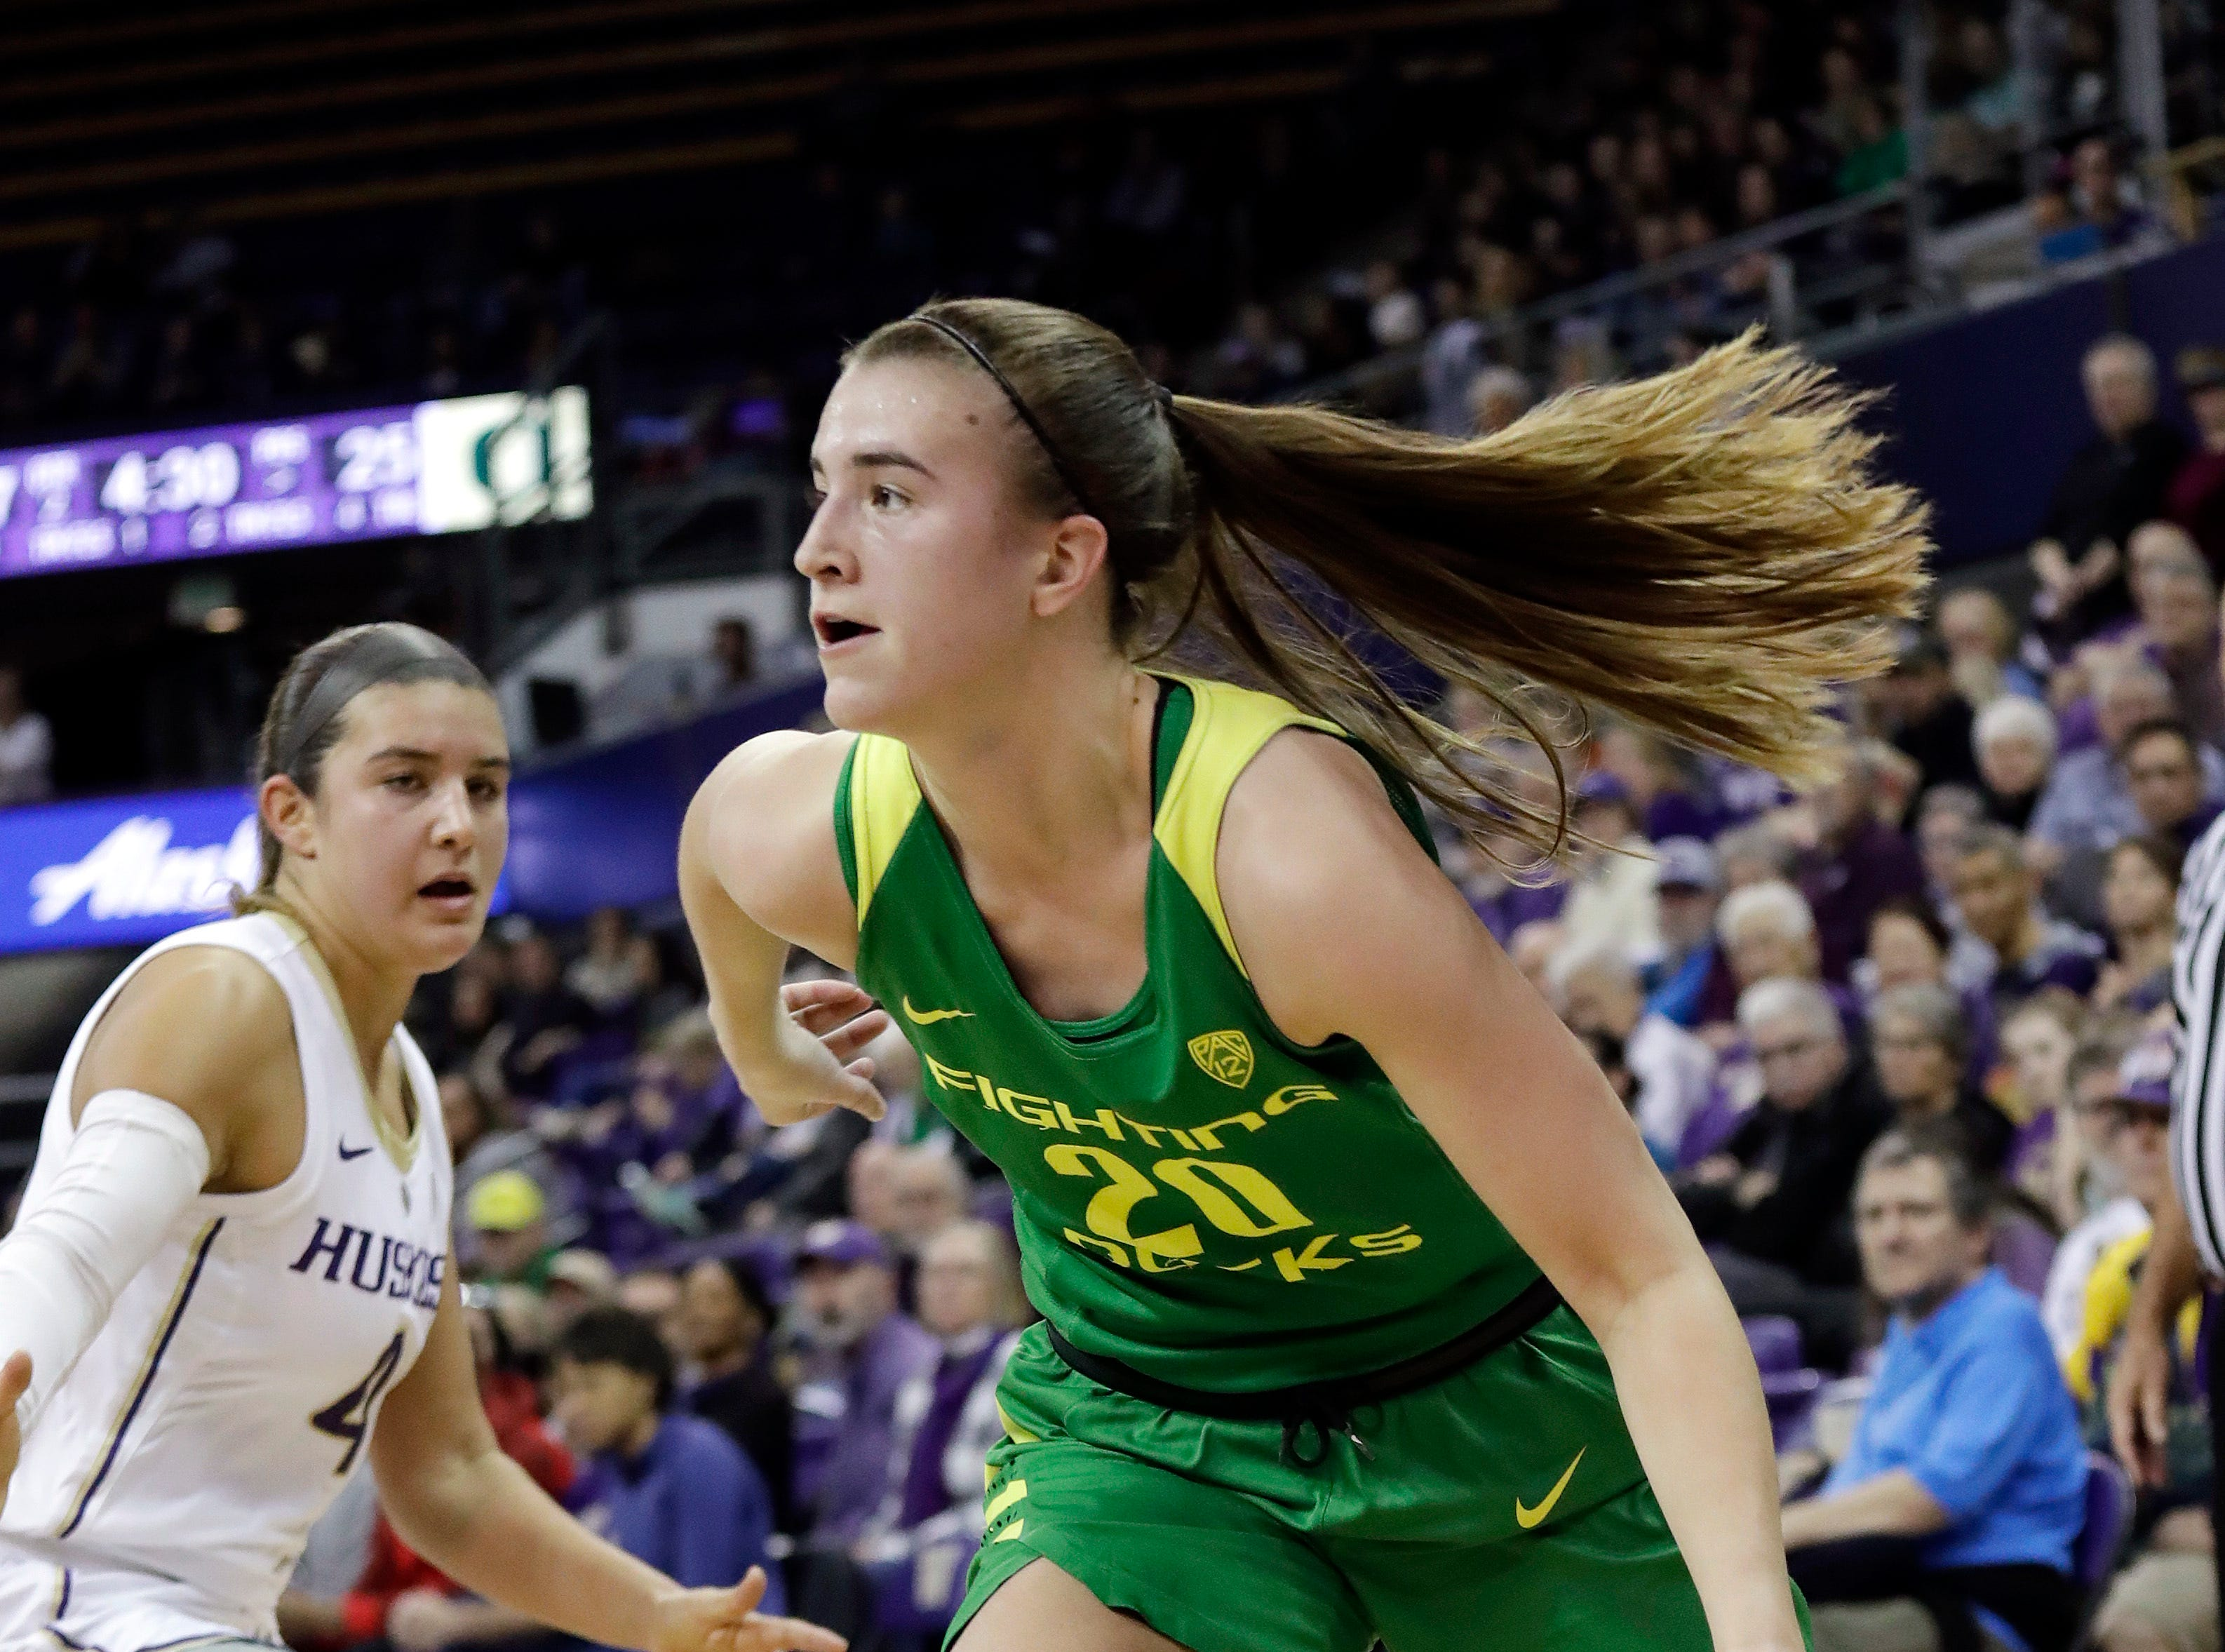 Oregon's Sabrina Ionescu, right, drives past Washington's Amber Melgoza in the first half of an NCAA college basketball game Sunday, Jan. 27, 2019, in Seattle.